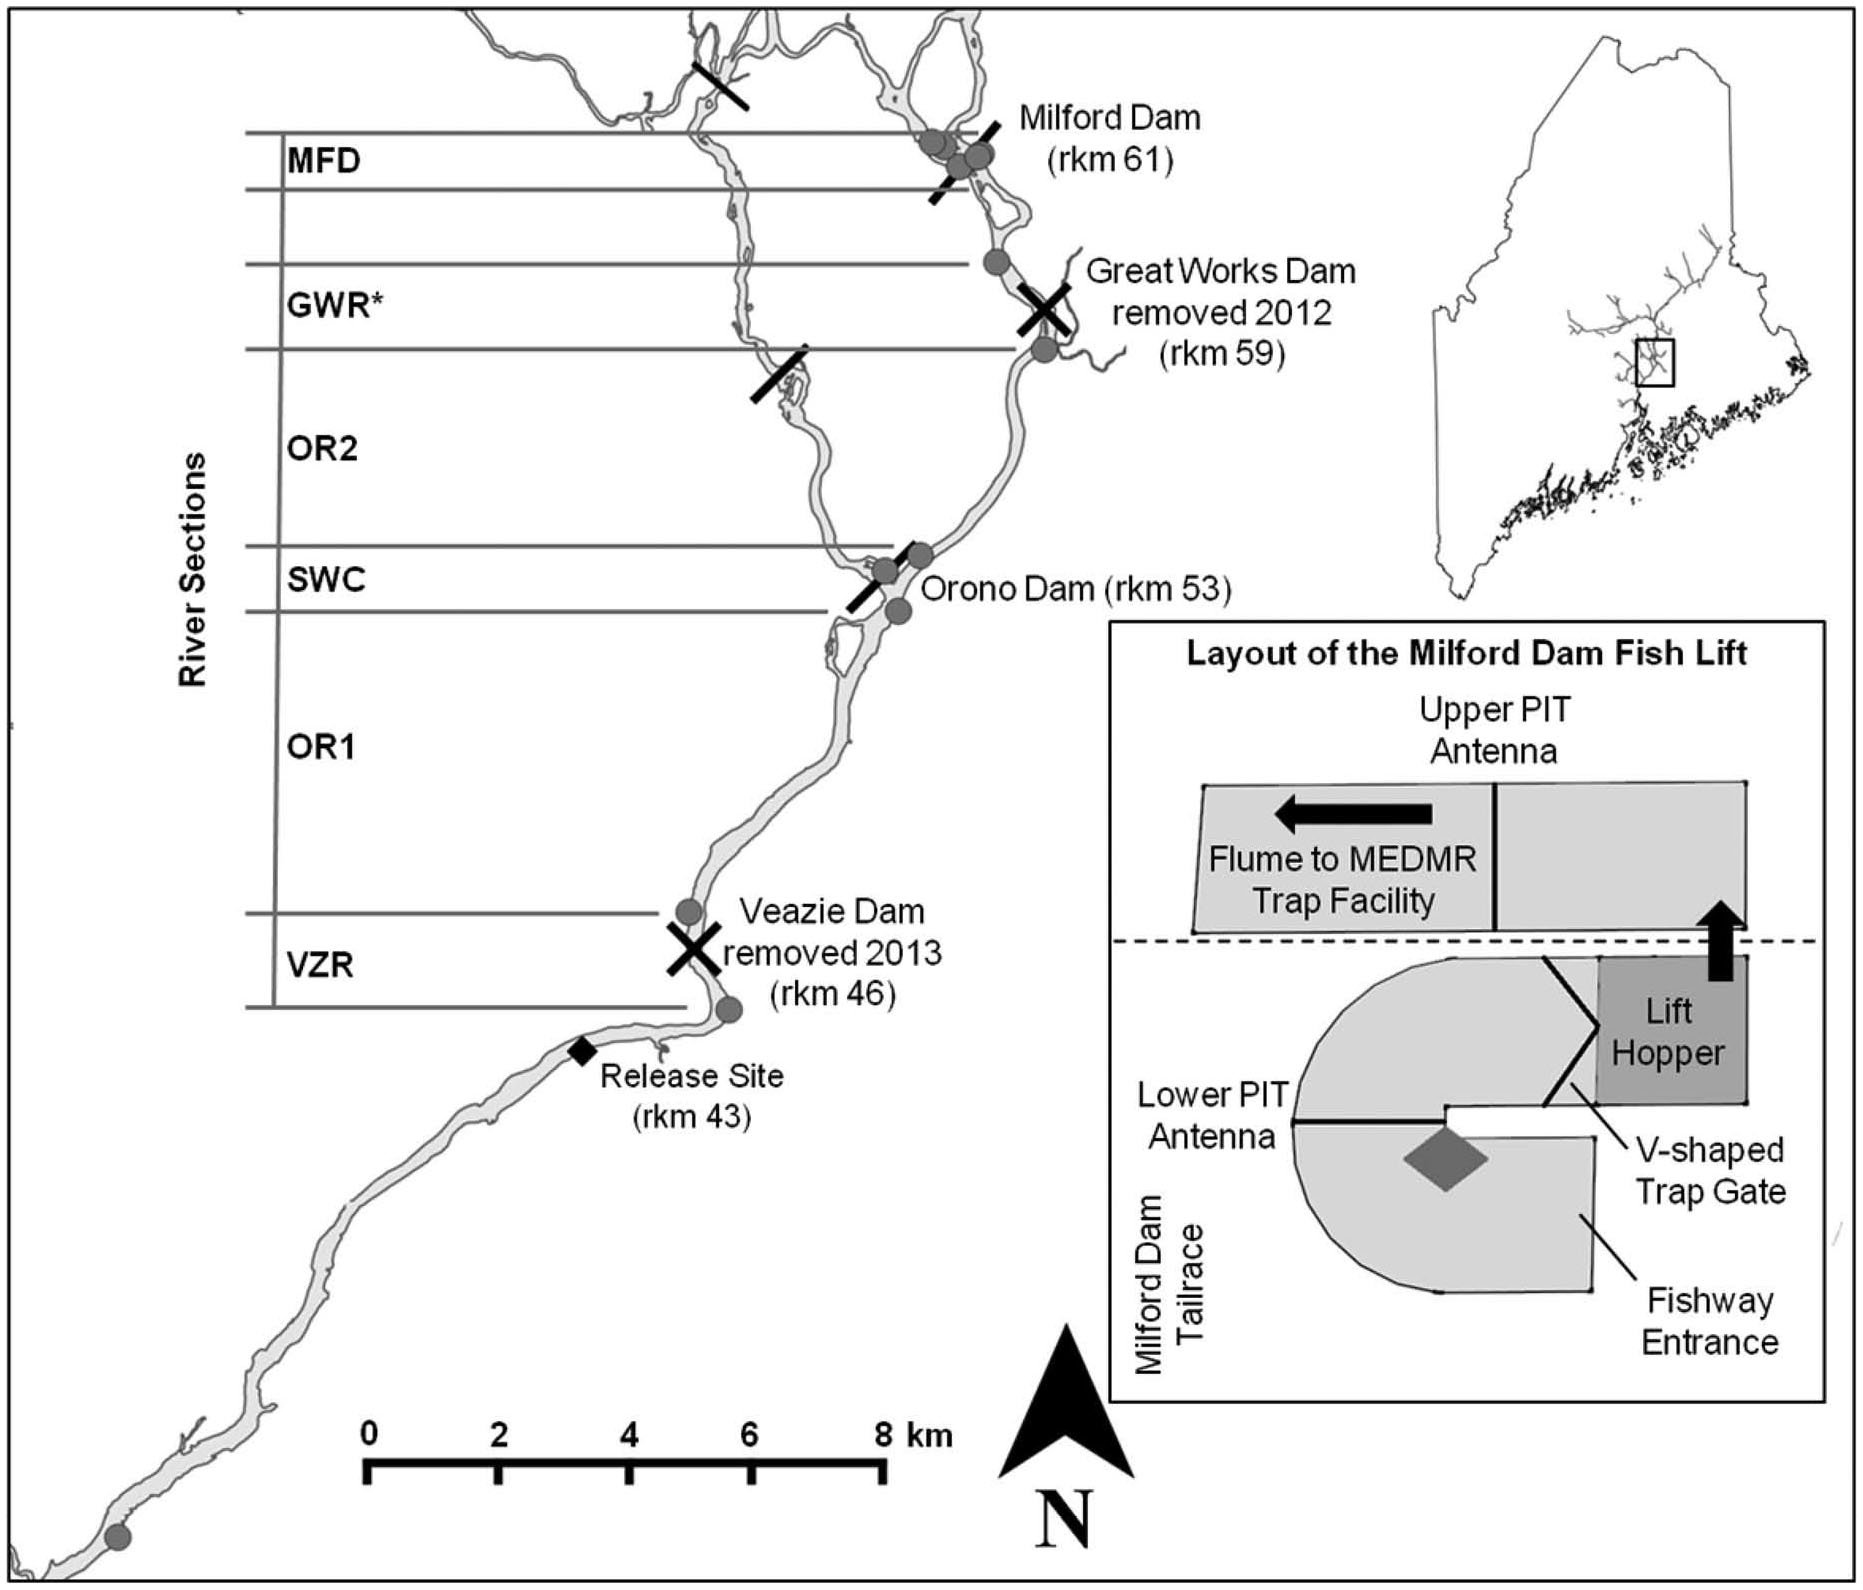 Upstream Movements of Atlantic Salmon in the Lower Penobscot River